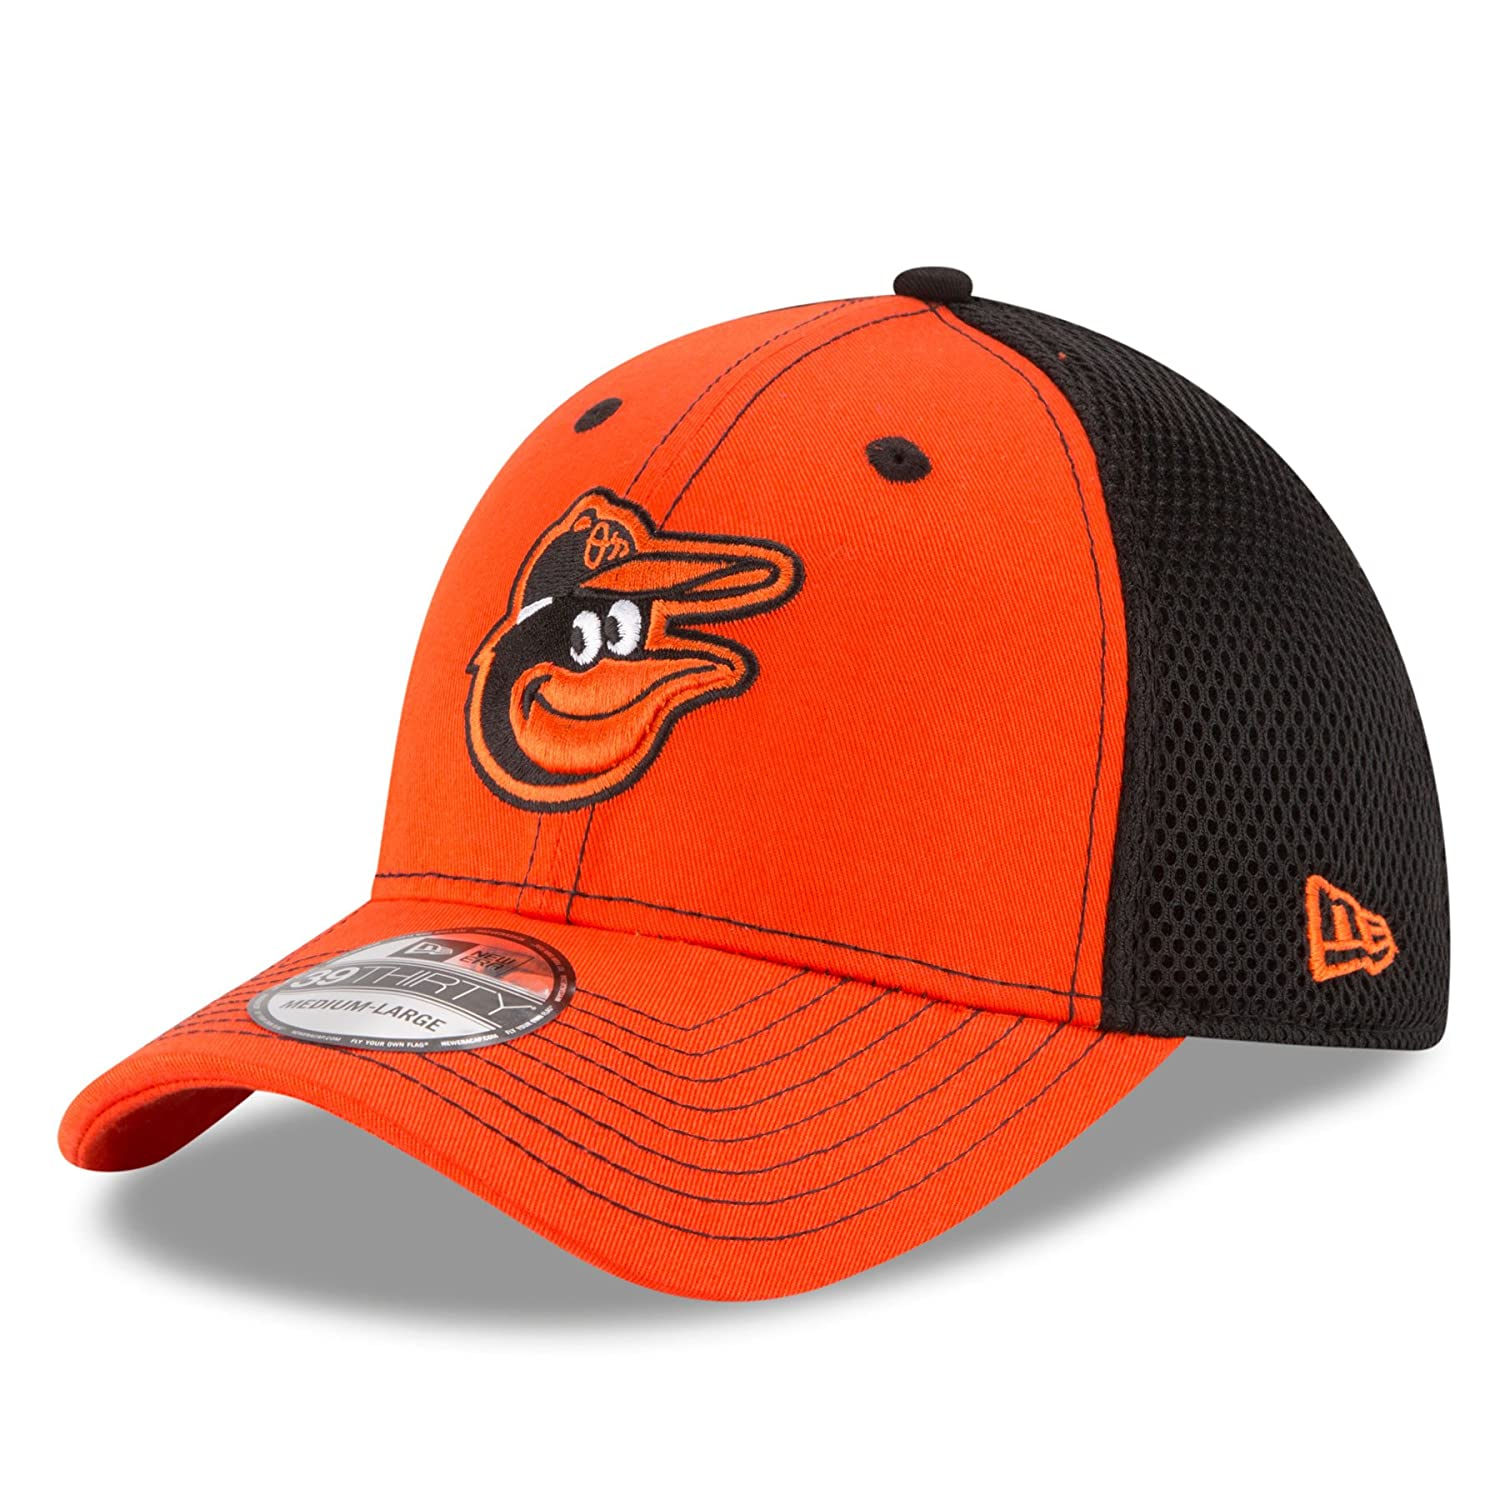 save off 51382 6443d Amazon.com   Baltimore Orioles New Era MLB 39THIRTY Team Front Neo Flex Fit  Hat   Clothing